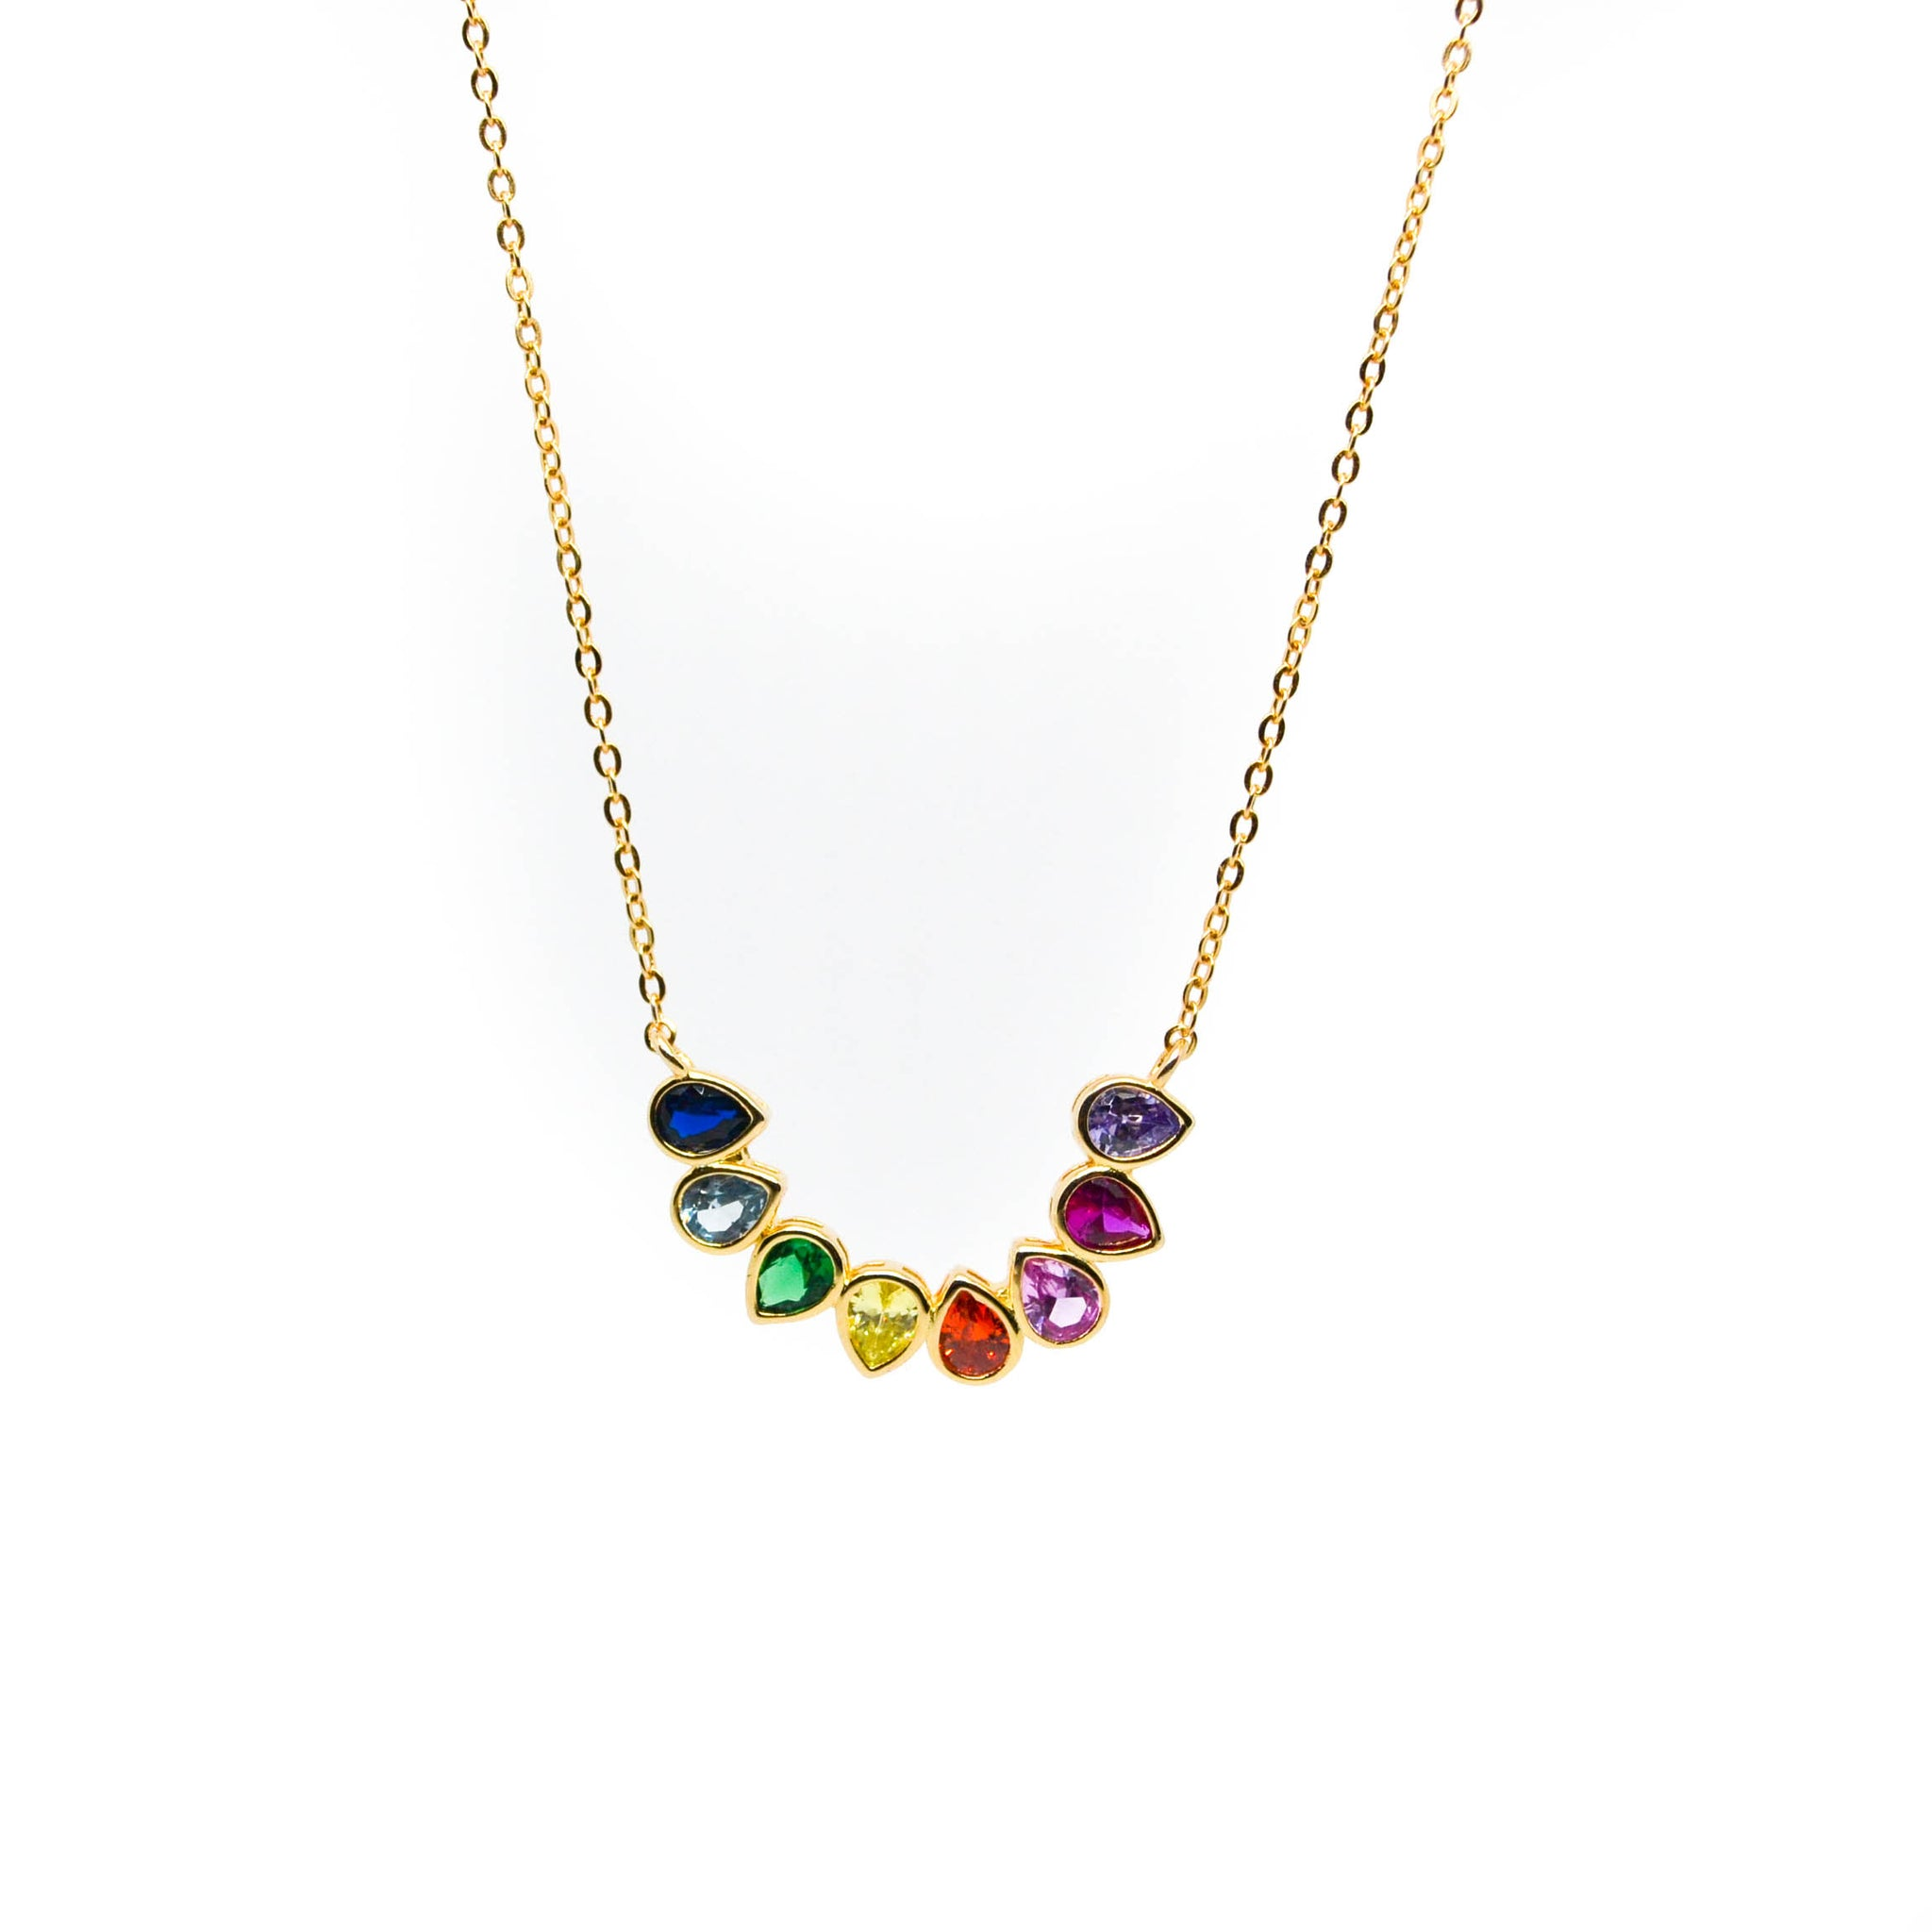 Kepler Necklace